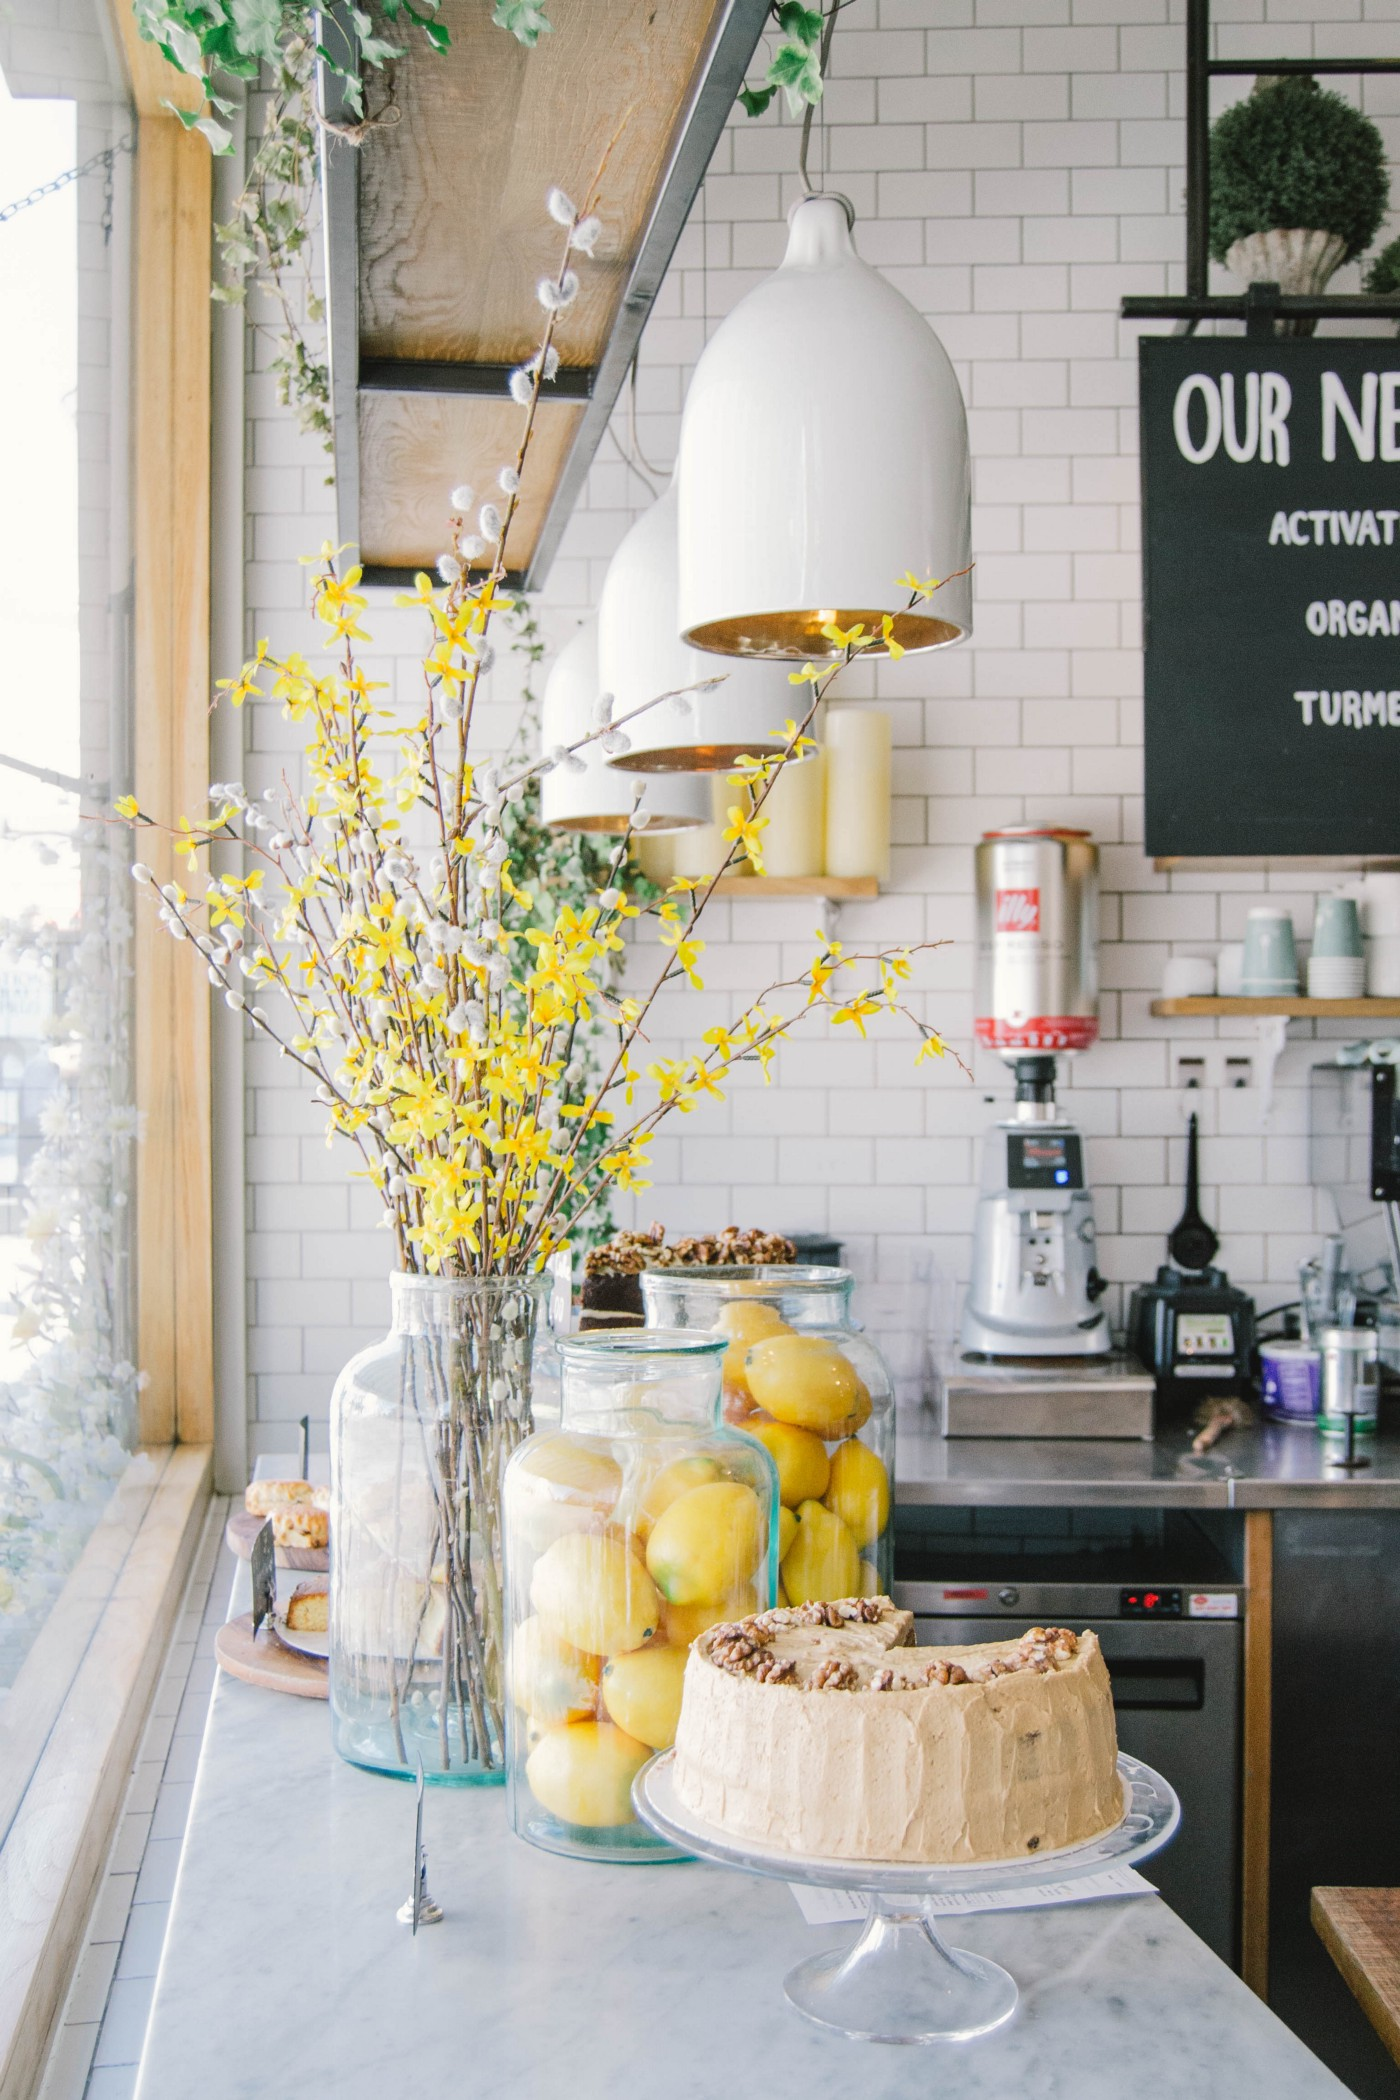 Decorating the kitchen with flowers